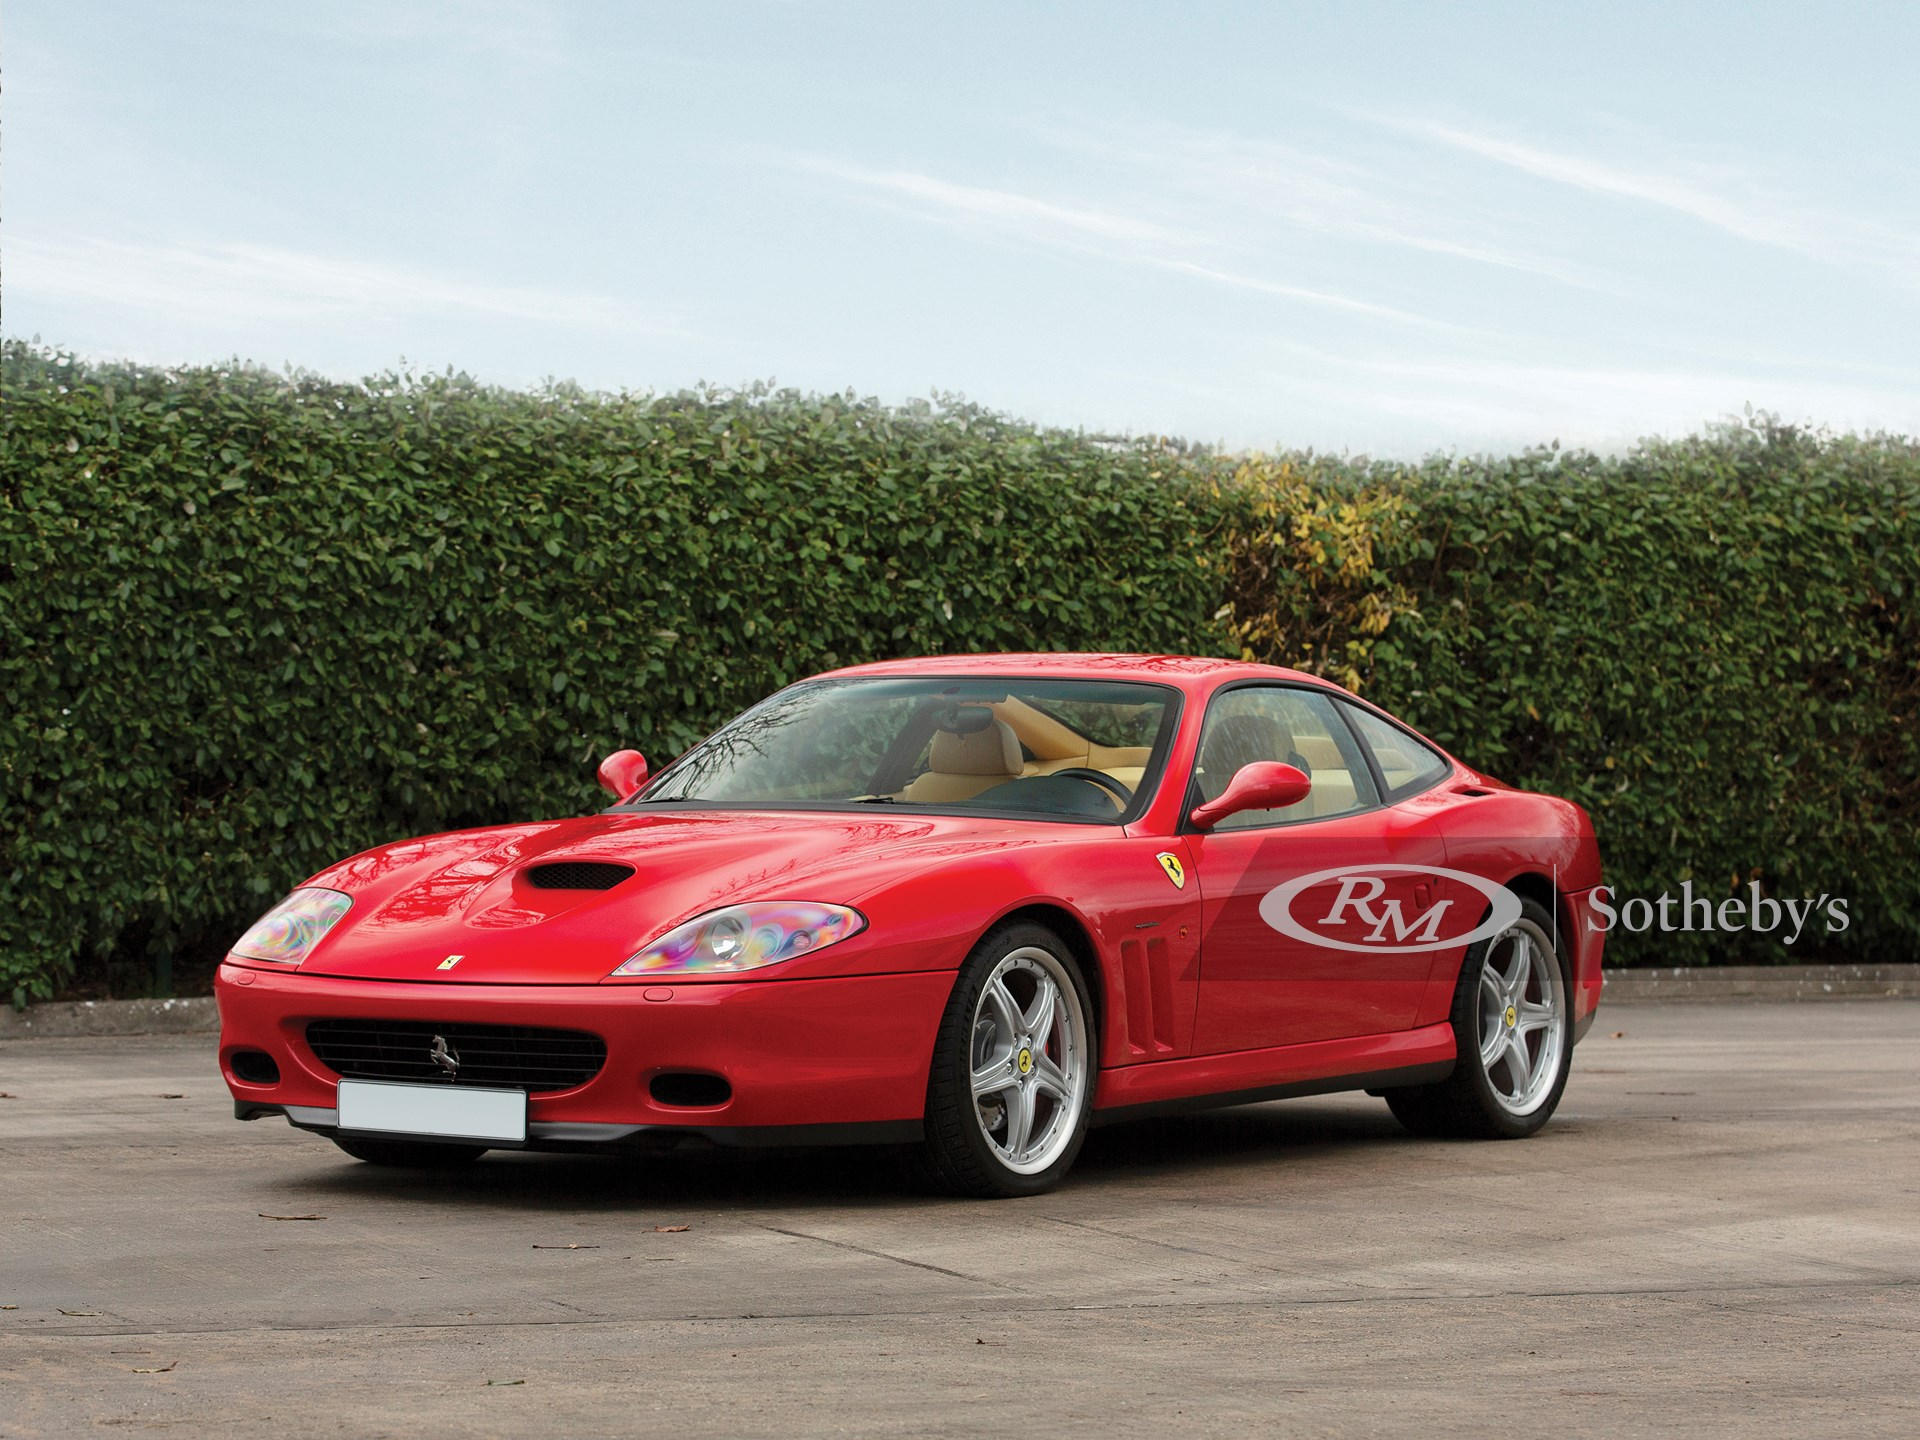 2002 Ferrari 575m Maranello The European Sale Featuring The Petitjean Collection Rm Online Only